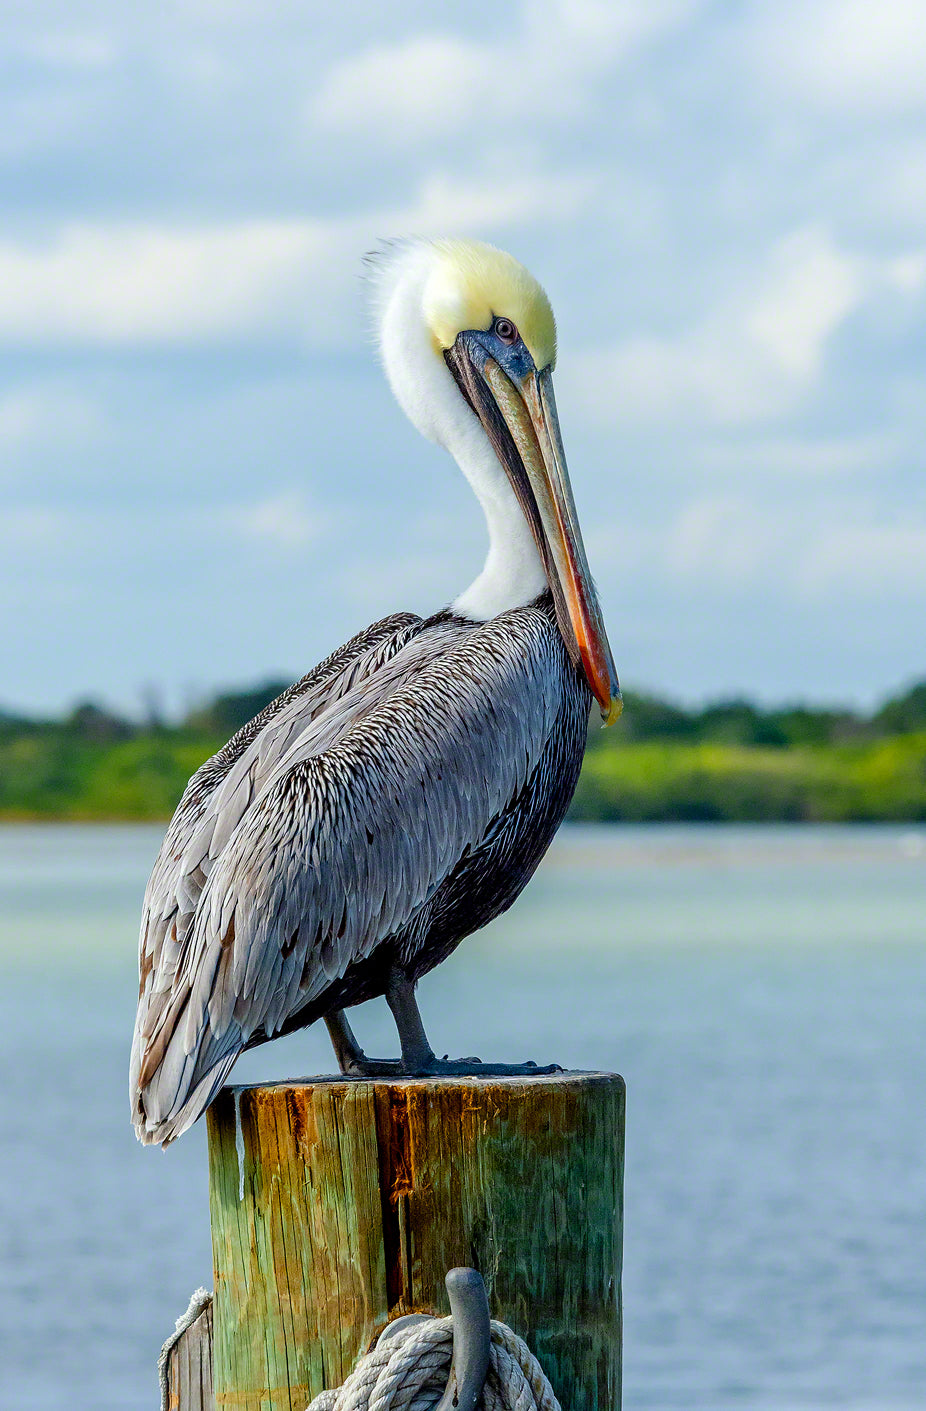 A photo of a brown pelican standing on a dock piling